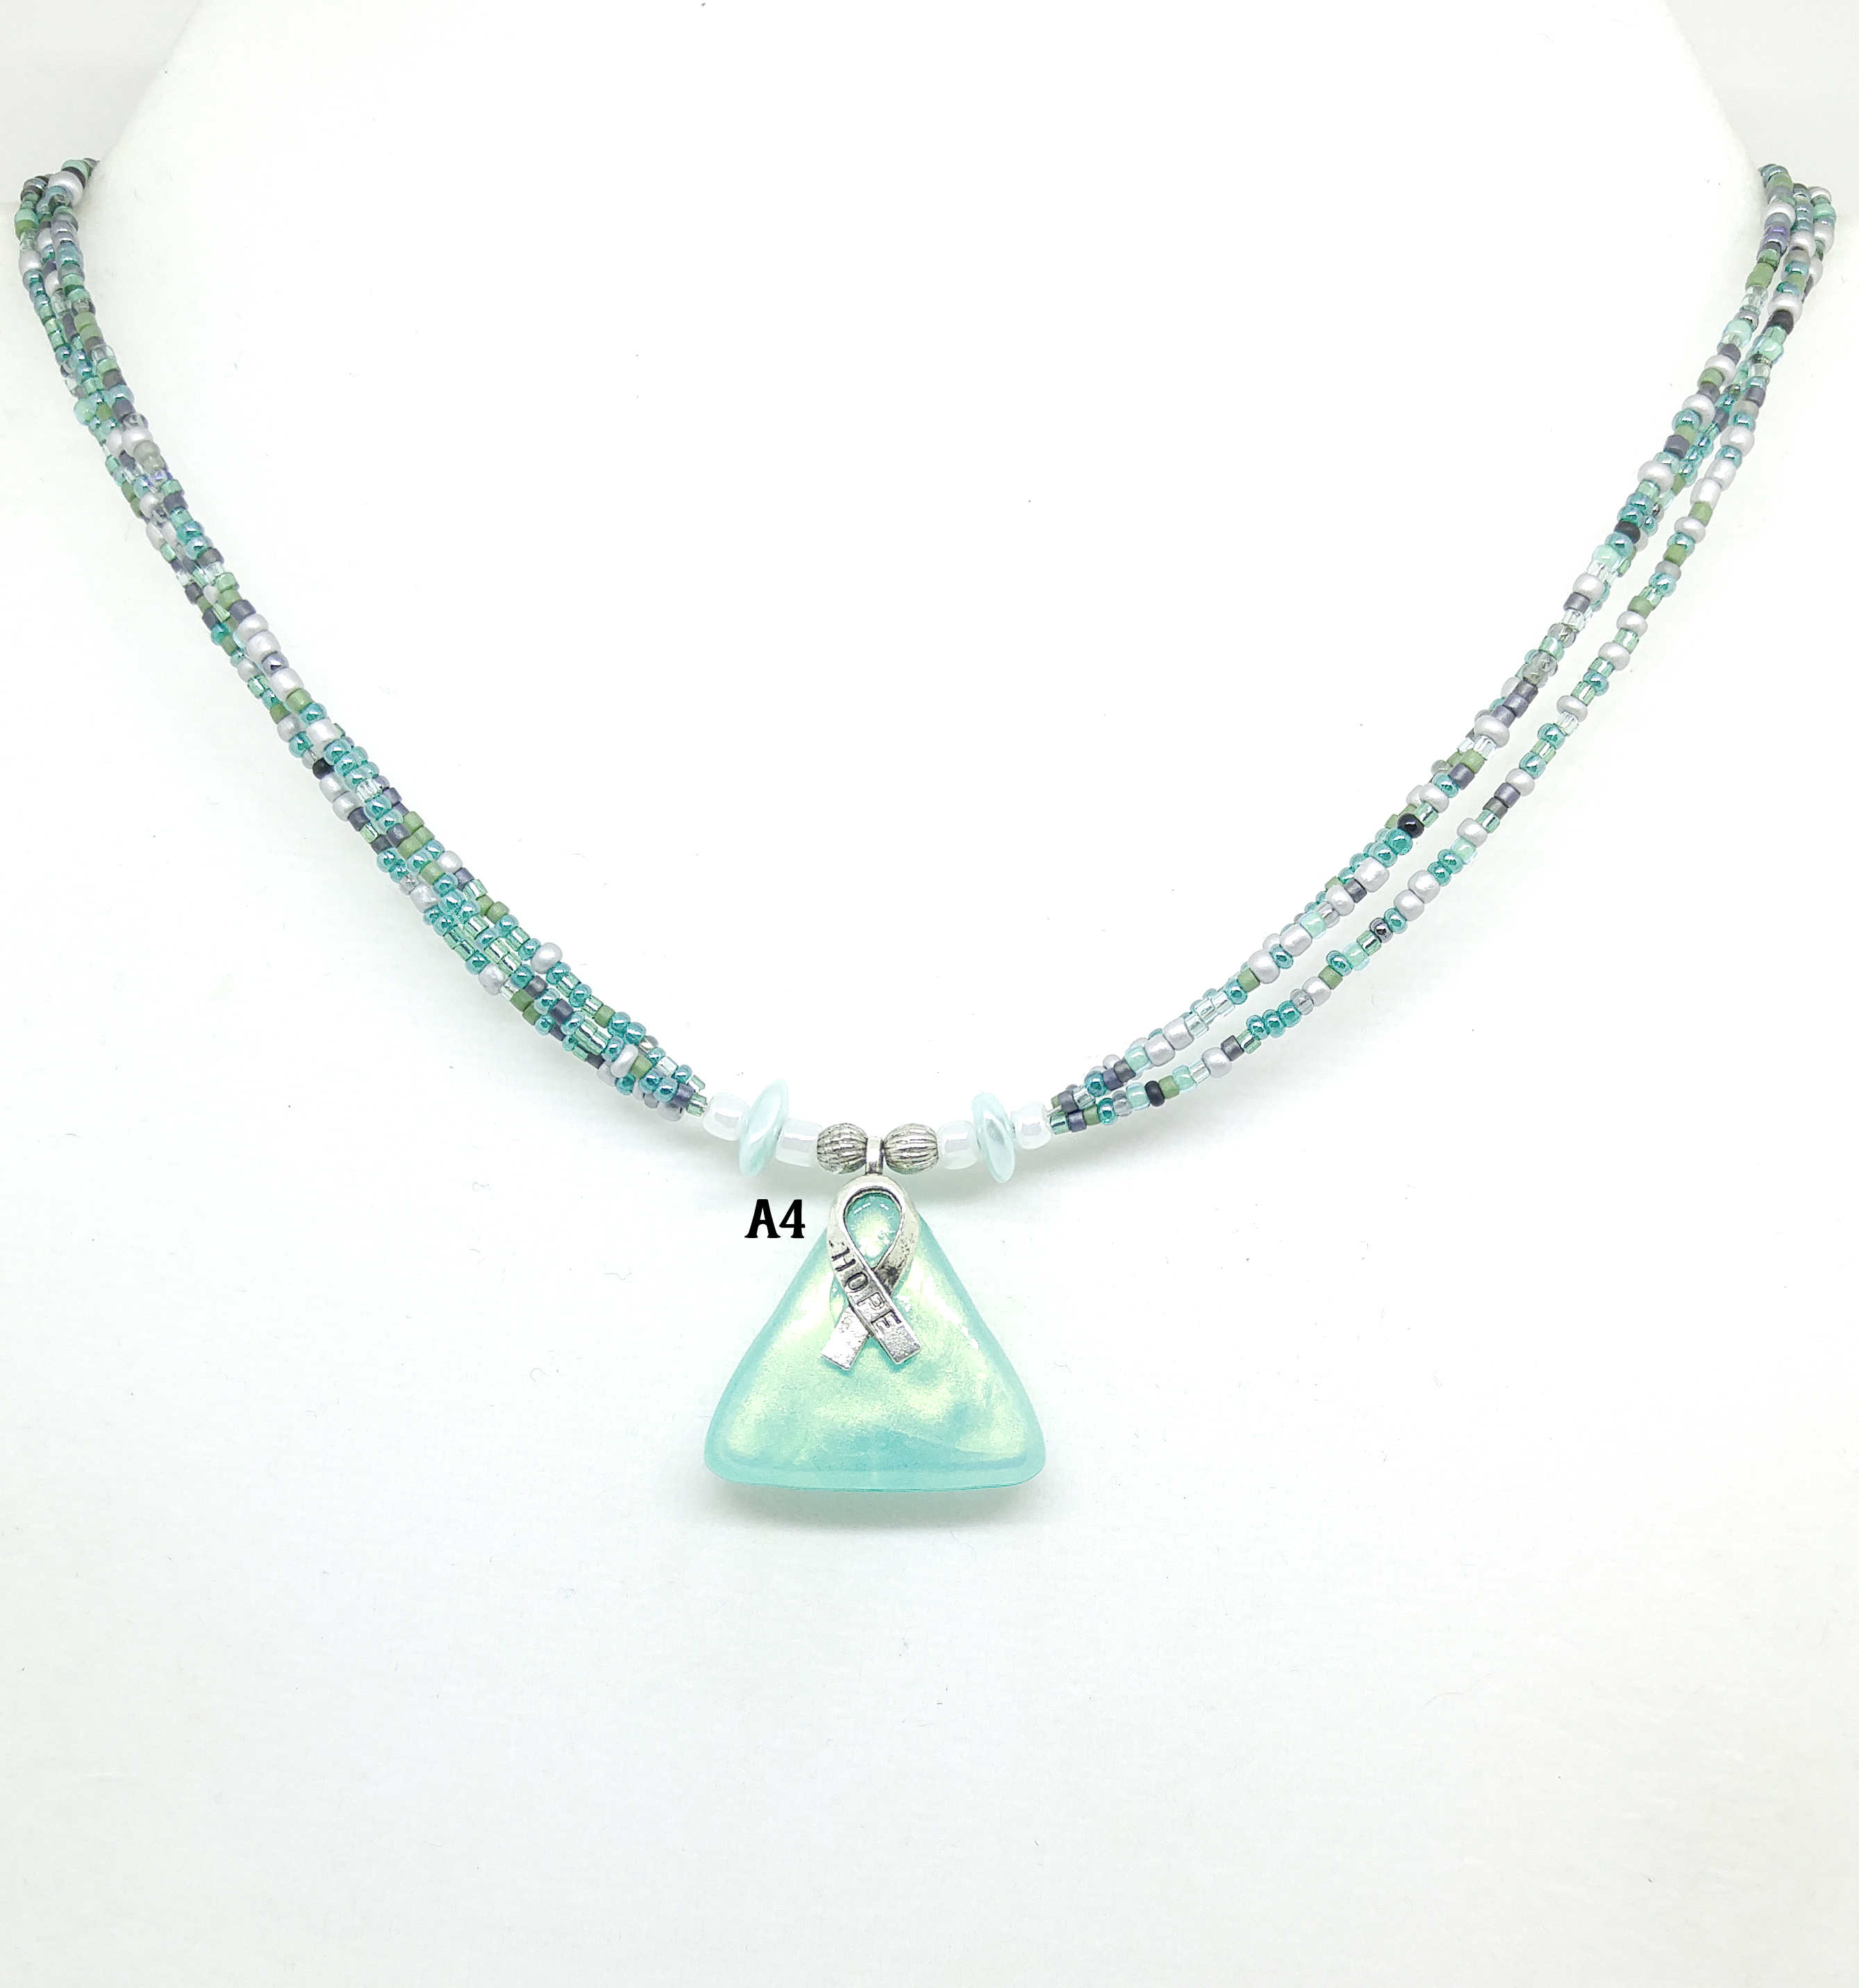 Ovarian Cancer Awareness 2 Styles Sarahcate Creations Online Store Powered By Storenvy